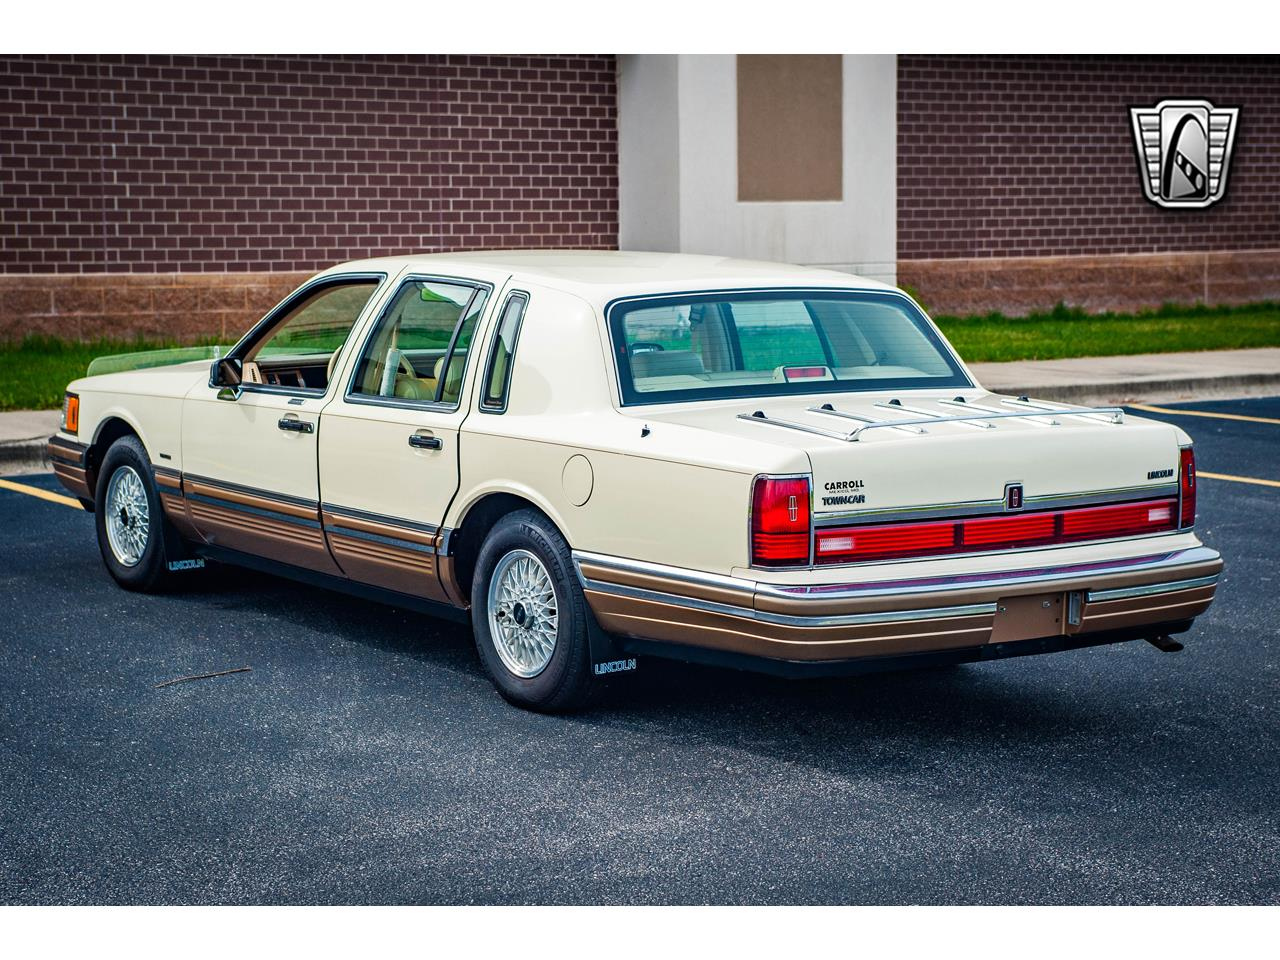 Large Picture of '90 Lincoln Town Car located in Illinois - $16,500.00 Offered by Gateway Classic Cars - St. Louis - QB8G